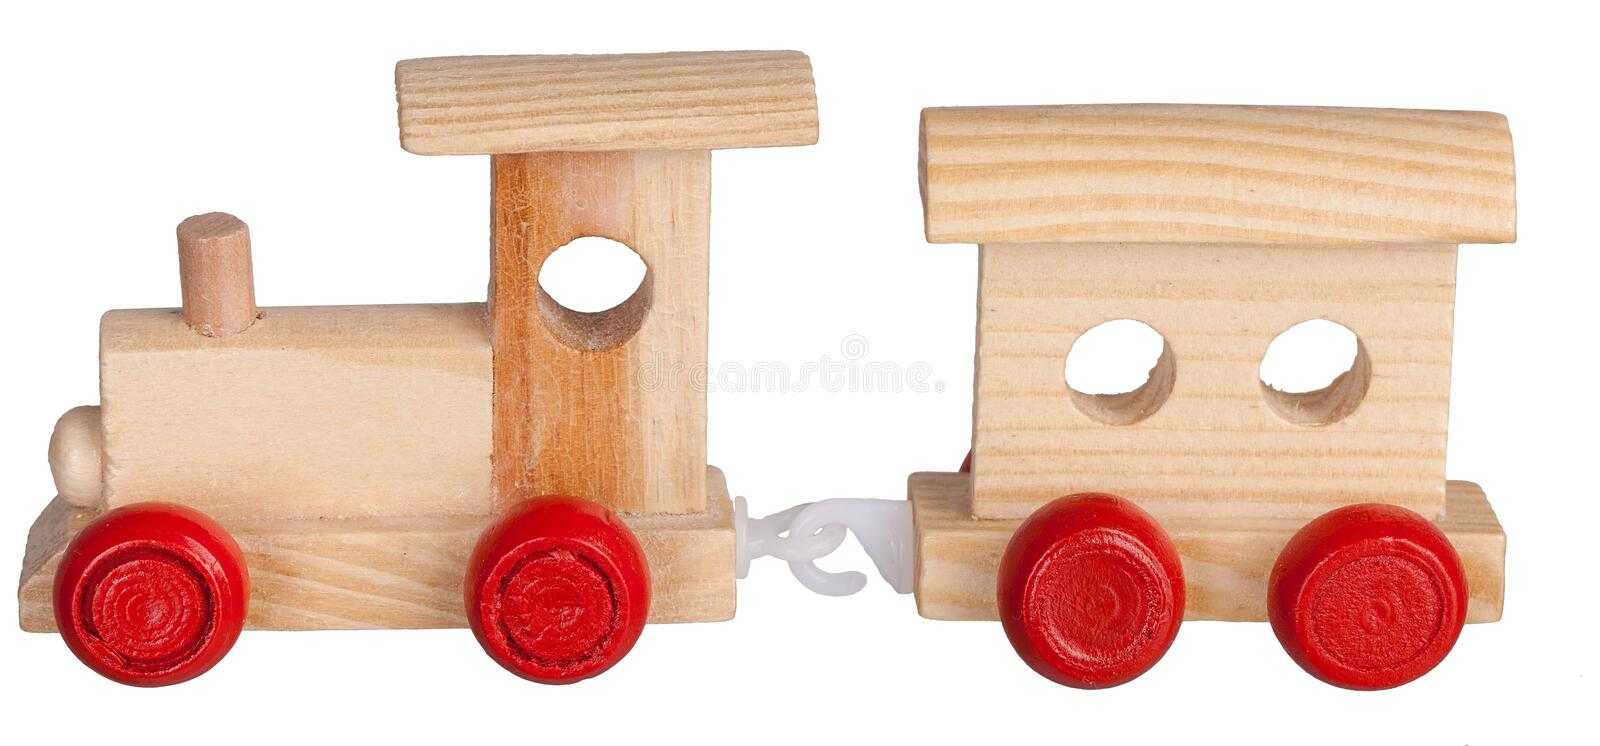 Toy wooden train with coach royalty free stock images